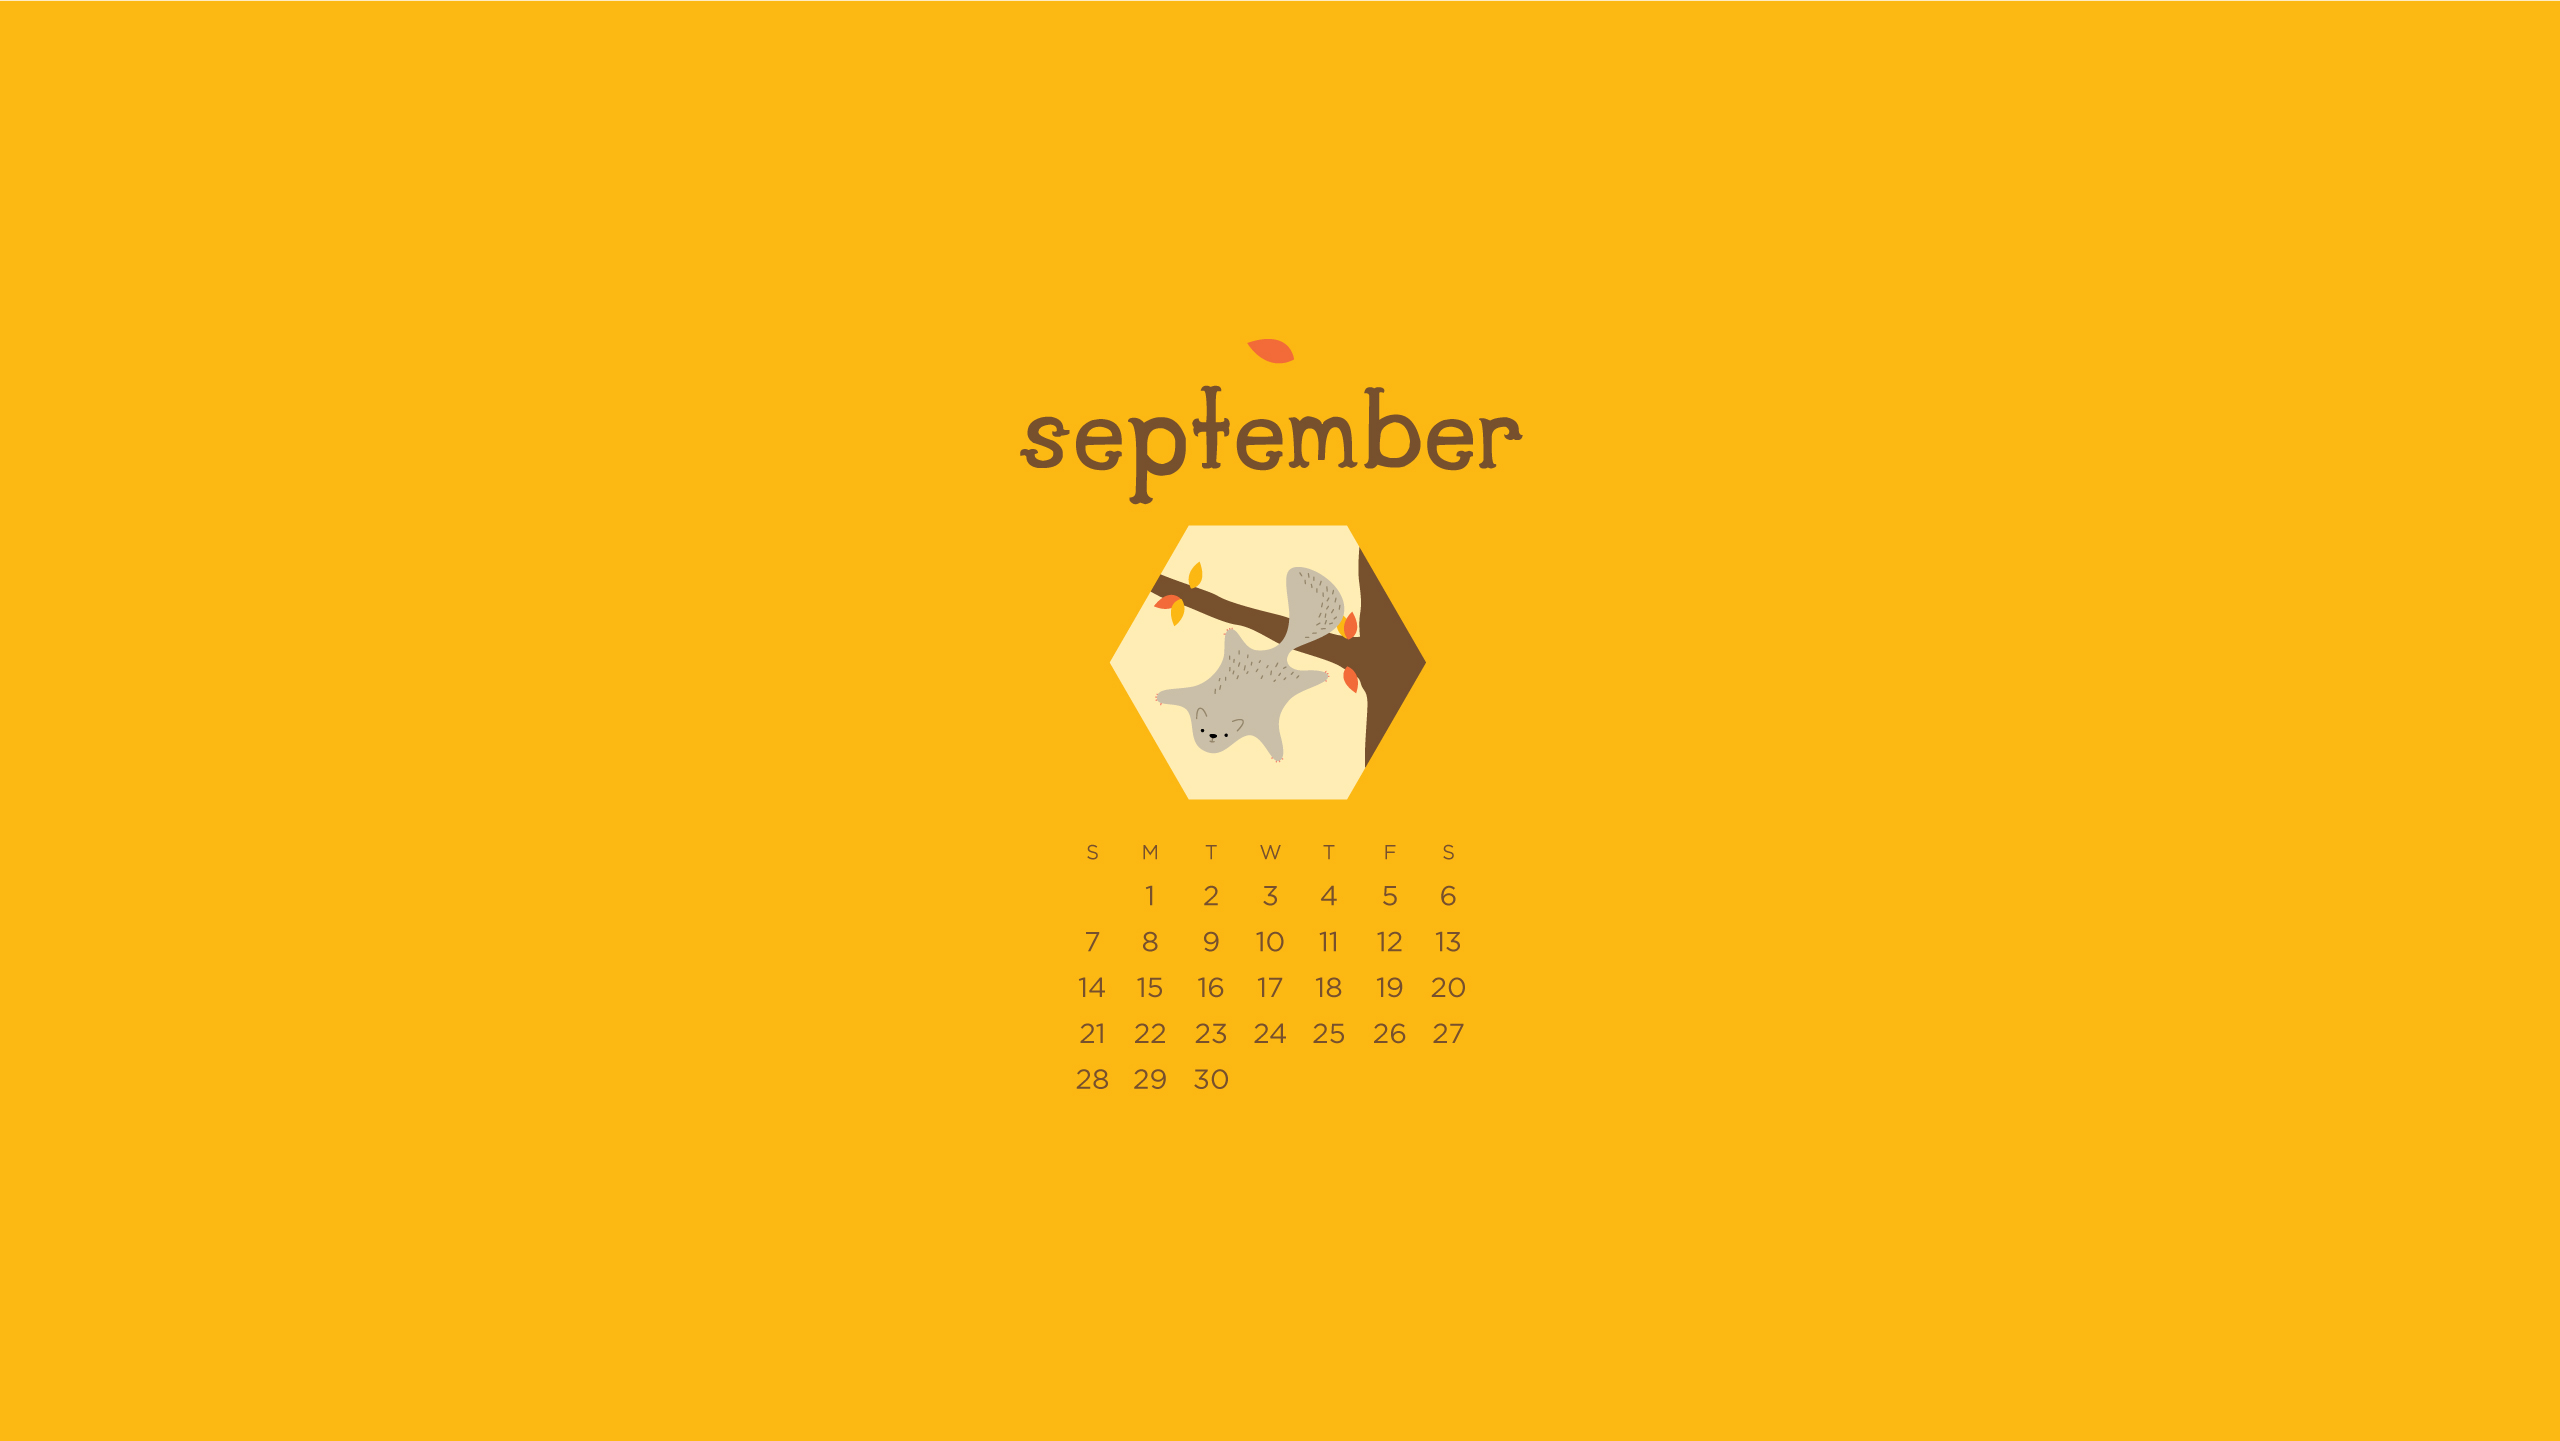 september 2015 wallpaper calendar - photo #18